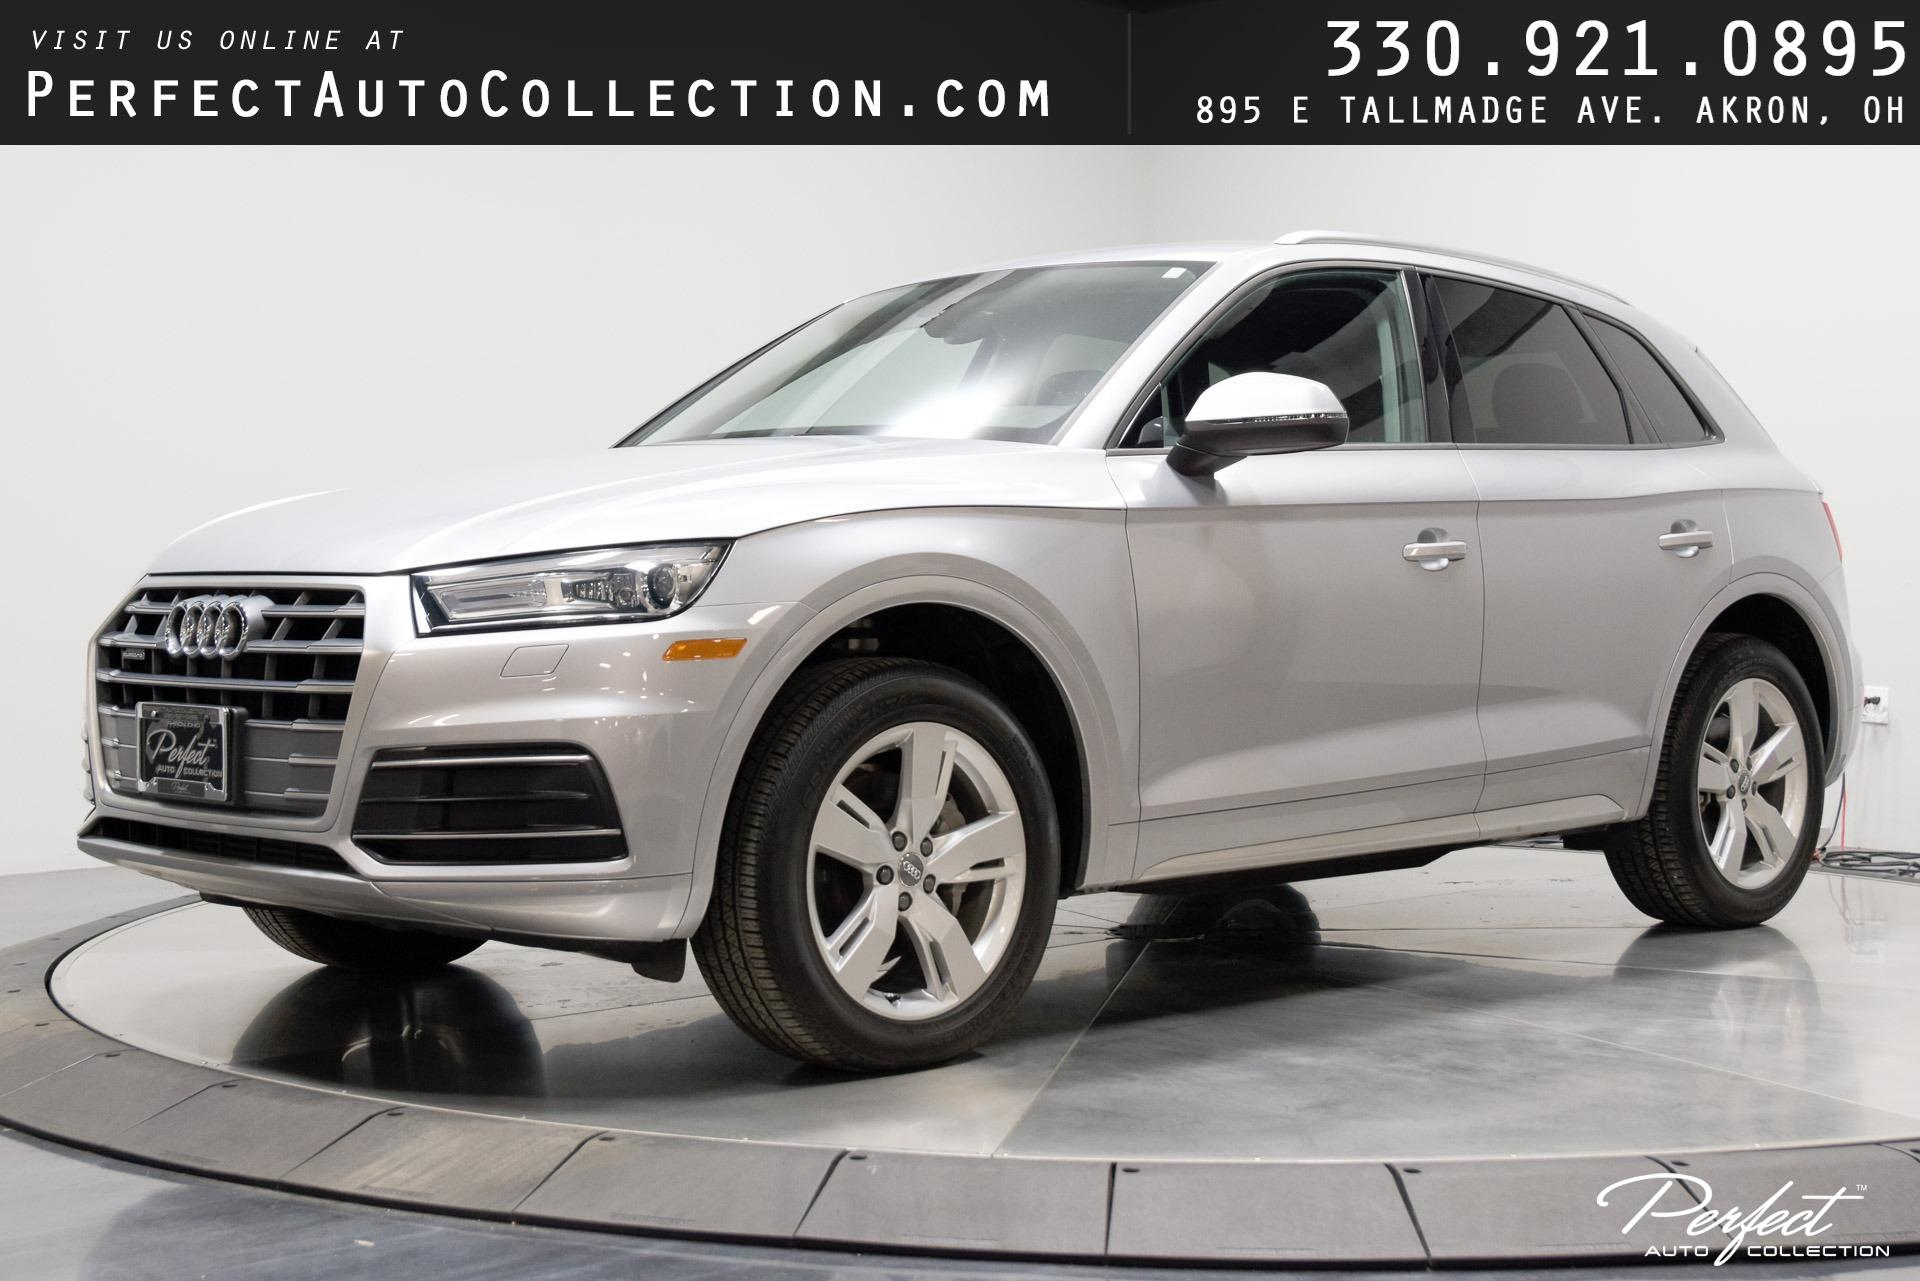 Used 2018 Audi Q5 2.0T quattro Premium for sale $30,895 at Perfect Auto Collection in Akron OH 44310 1